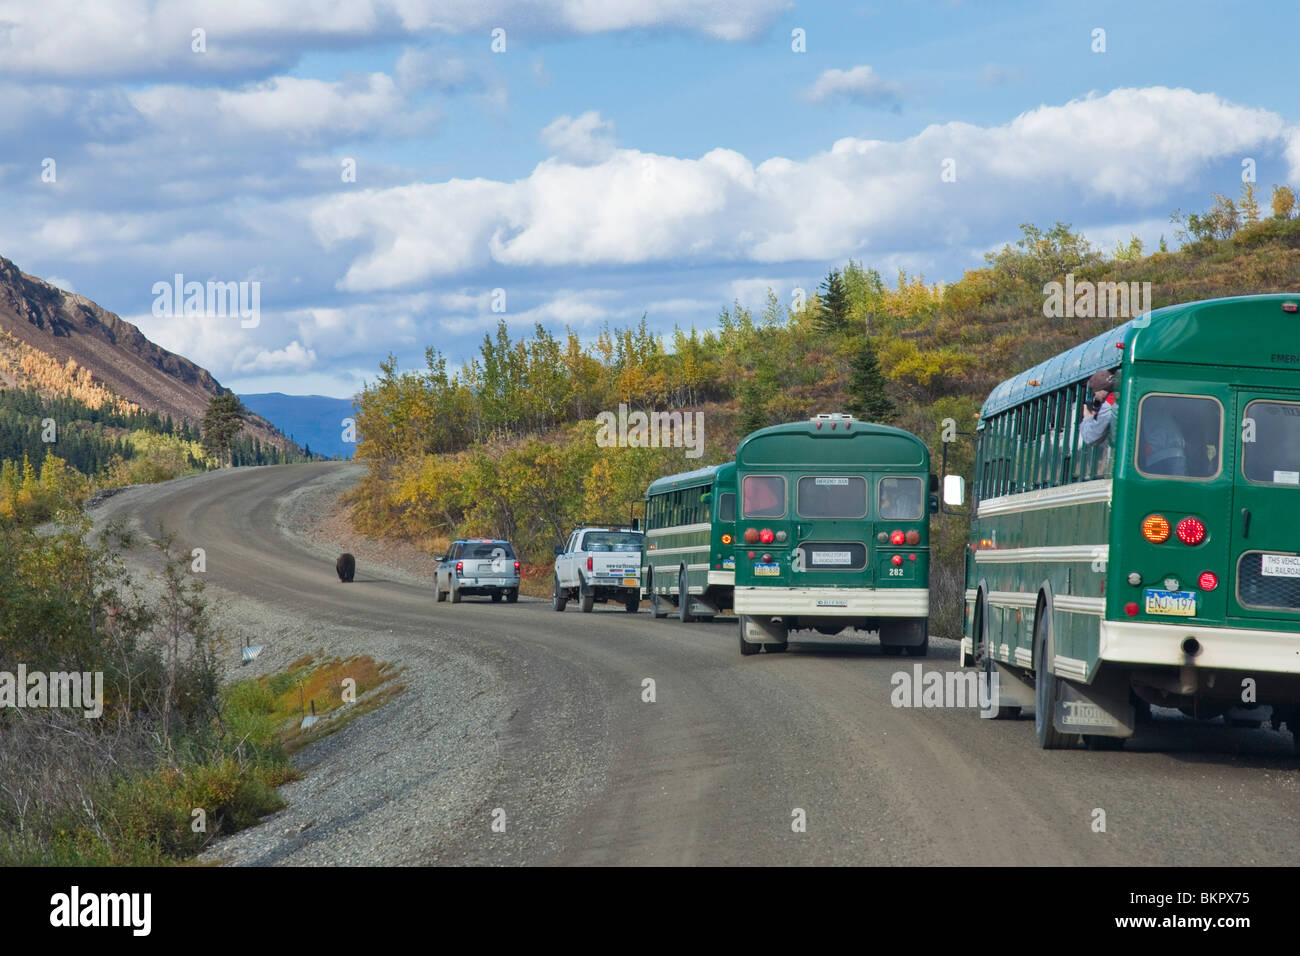 A grizzly bear walks on the park road followed by a parade of vehicles and buses in Igloo canyon in Denali National - Stock Image